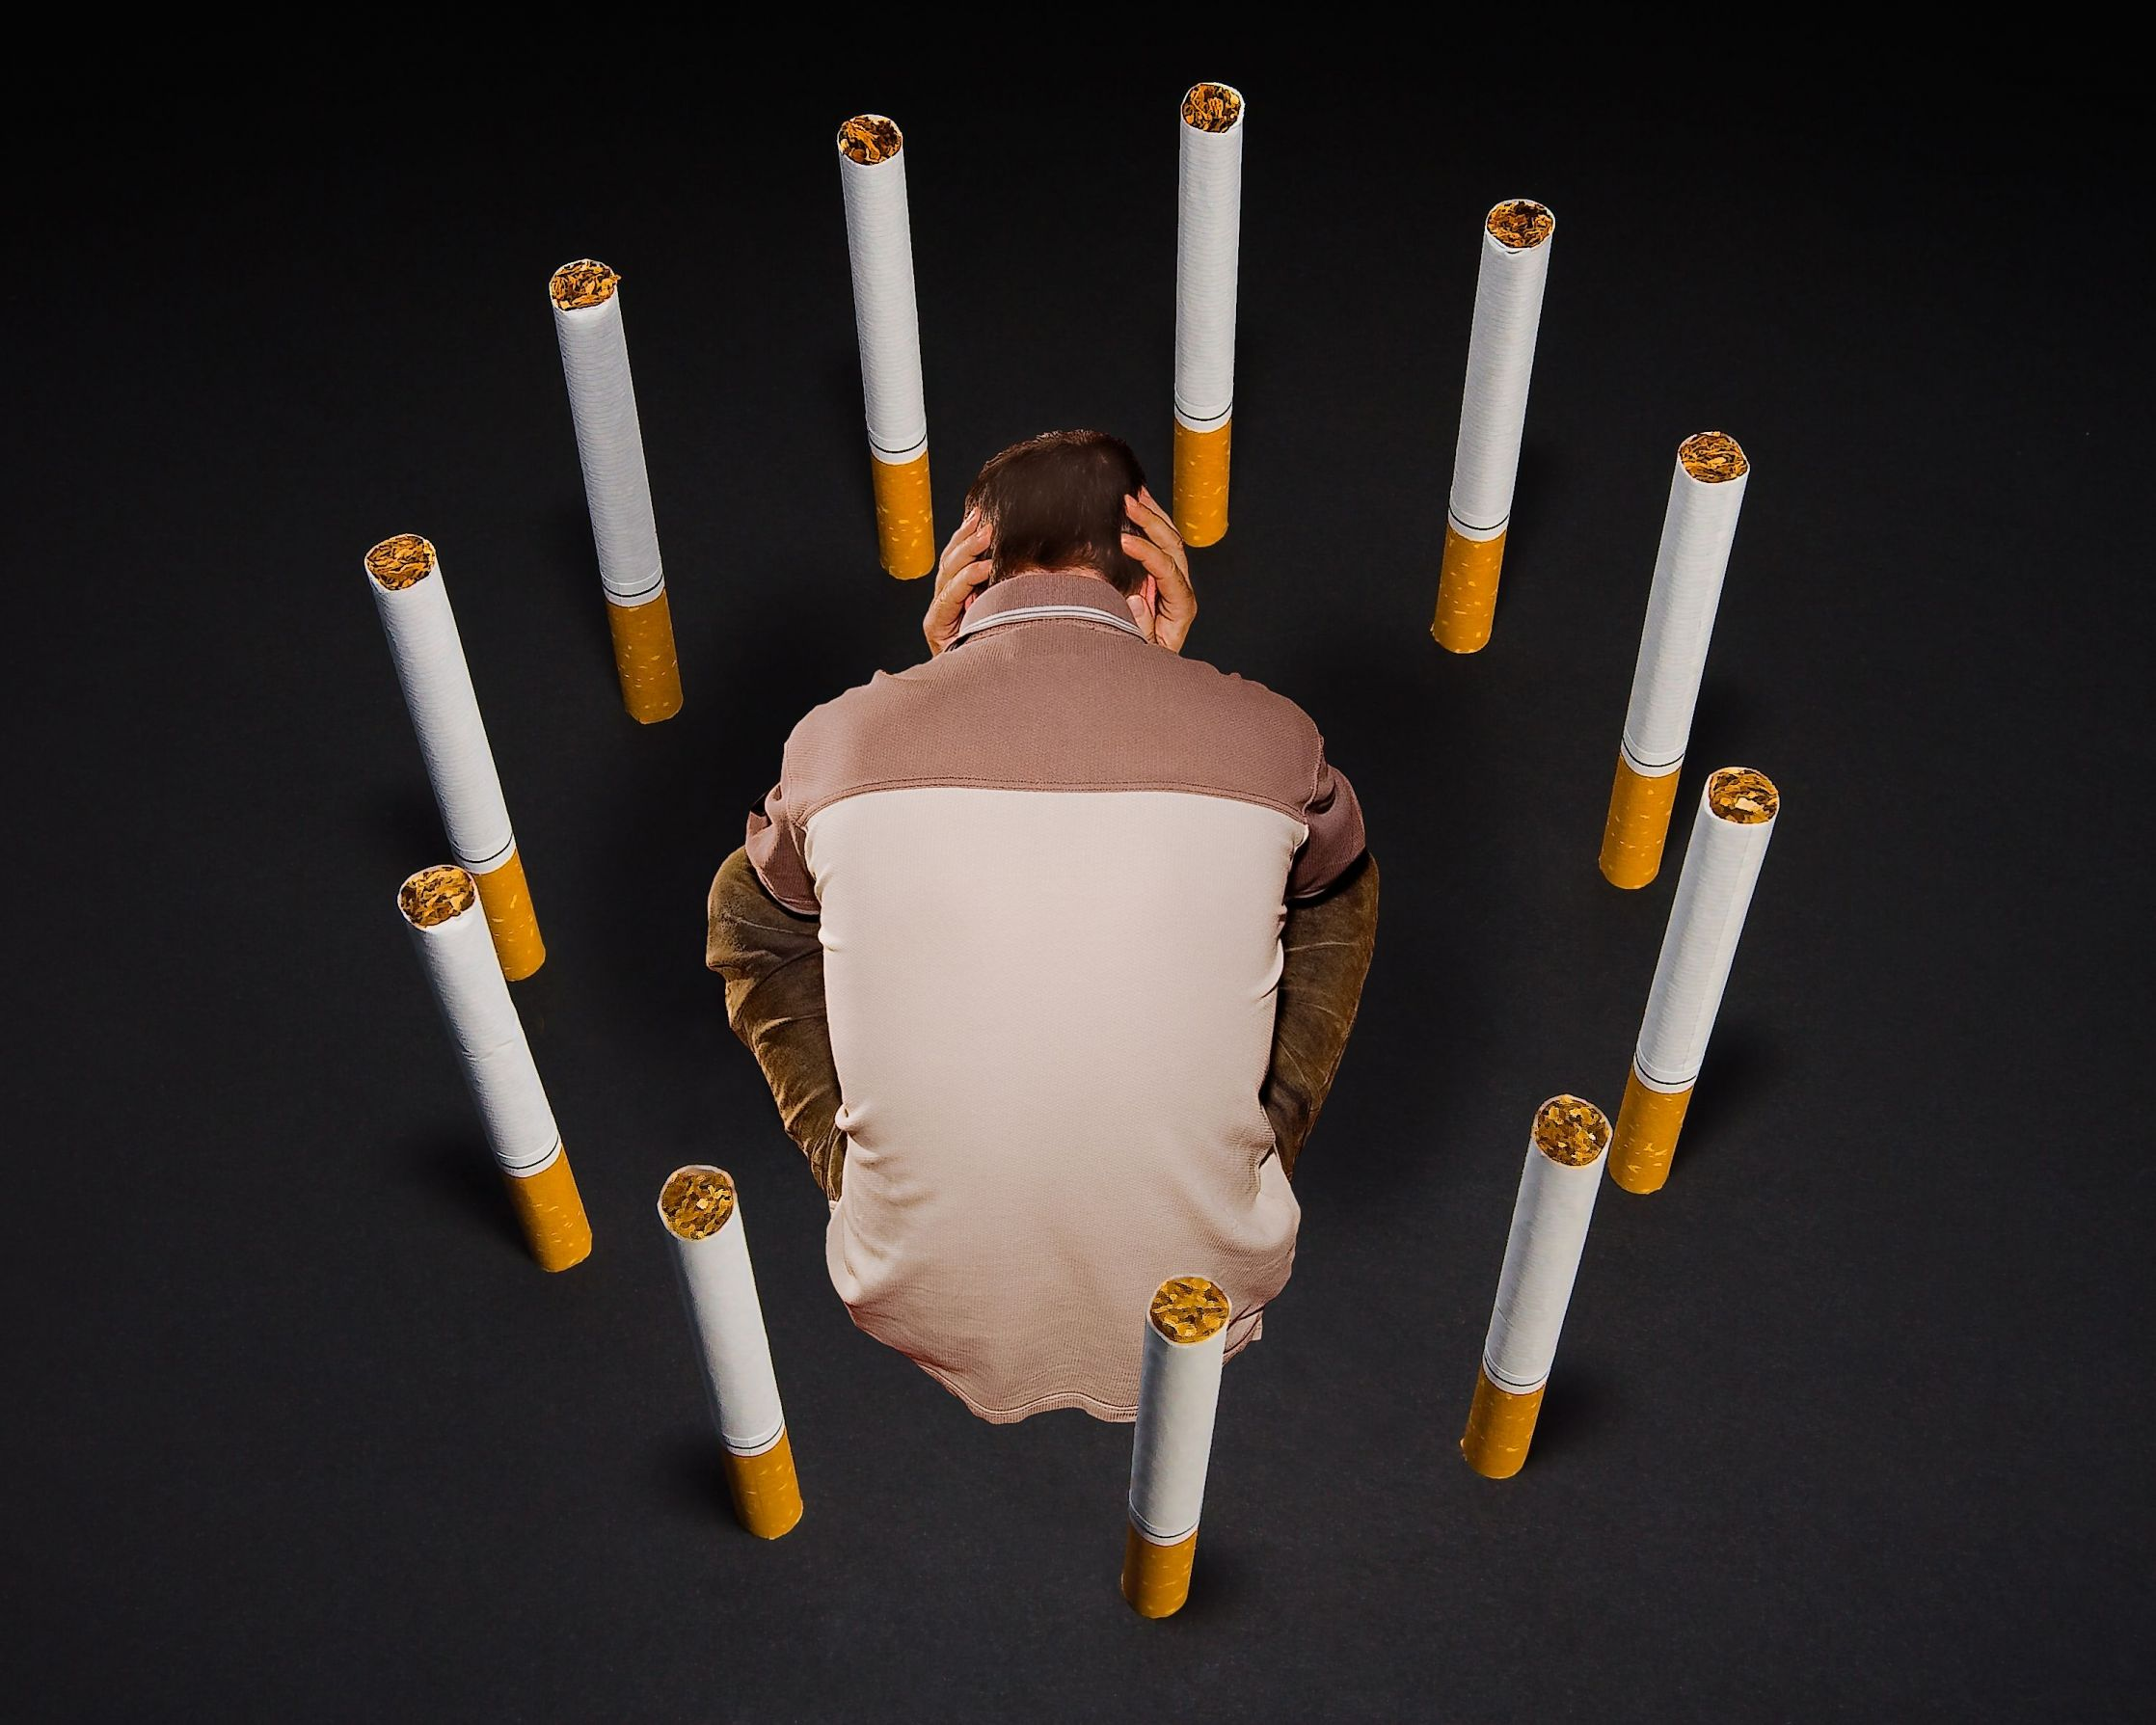 cigarette addiction One of the most helpful keys to beating tobacco addiction is to have an accountability partner—someone you trust and who you'll be able to contact when you feel.